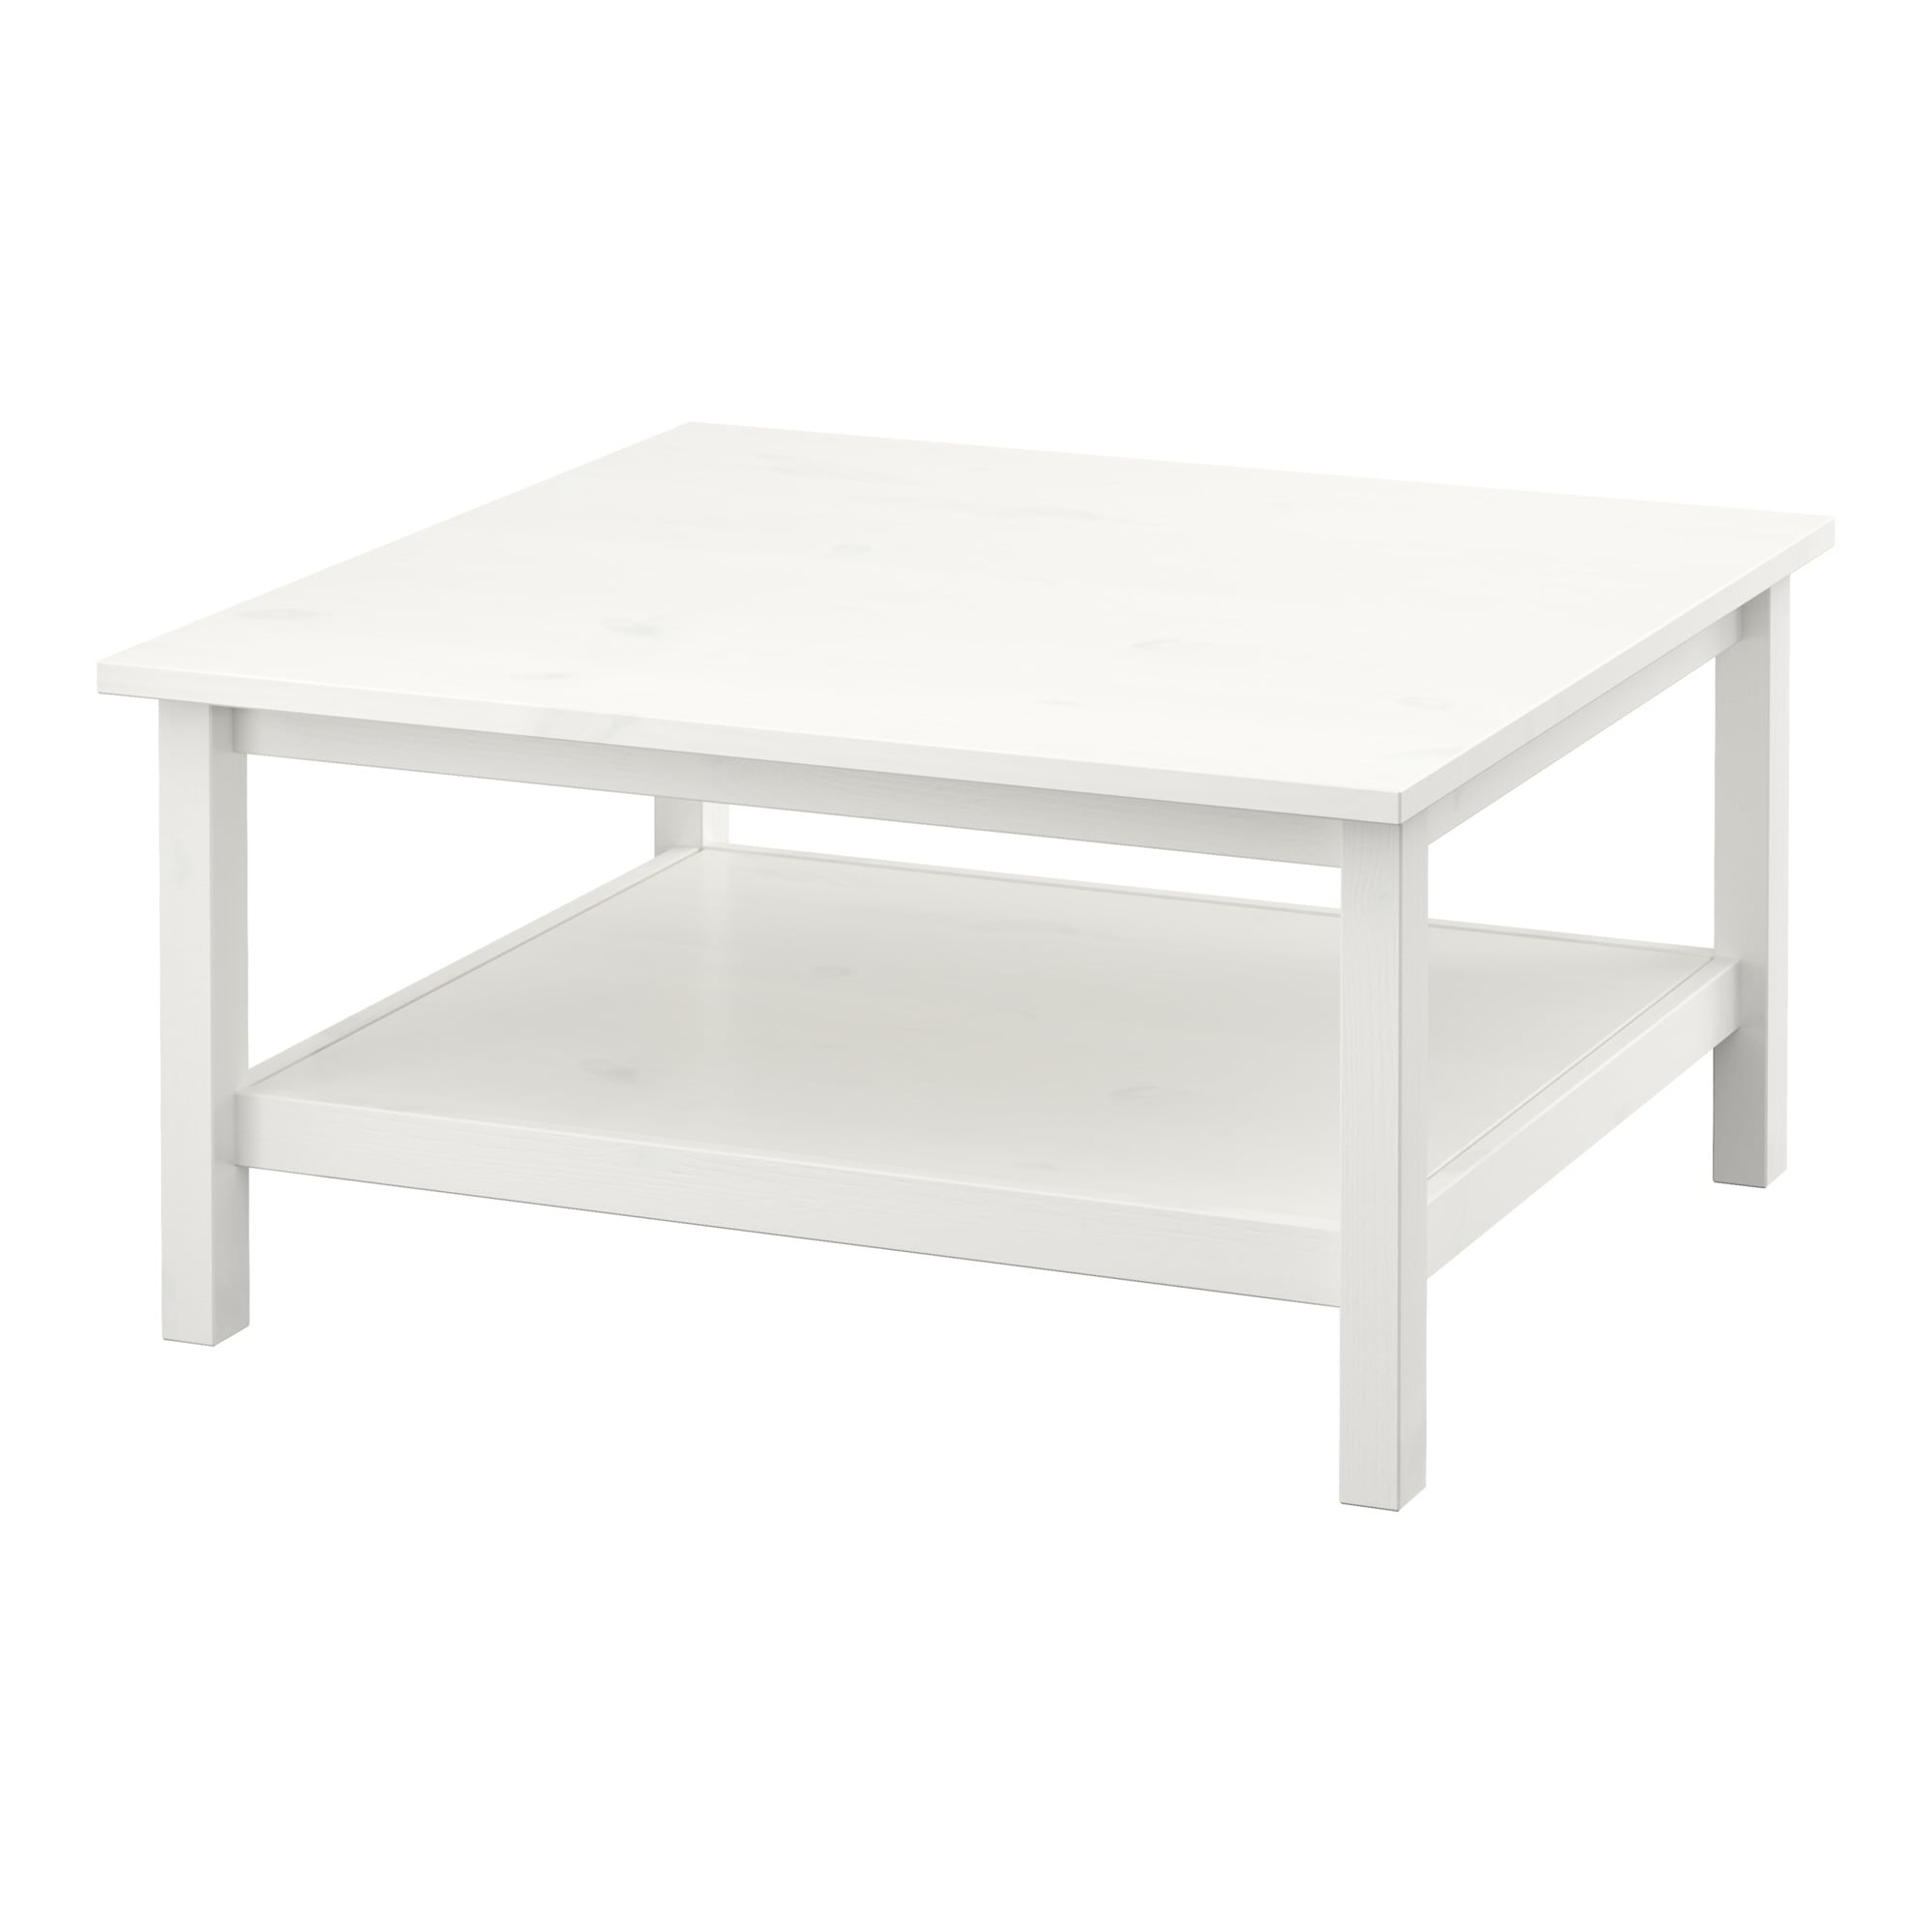 occasional tables tray storage window ikea within low coffee table intended for plan corner accent architecture clear chair parker furniture west elm standing lamp outdoor lounge